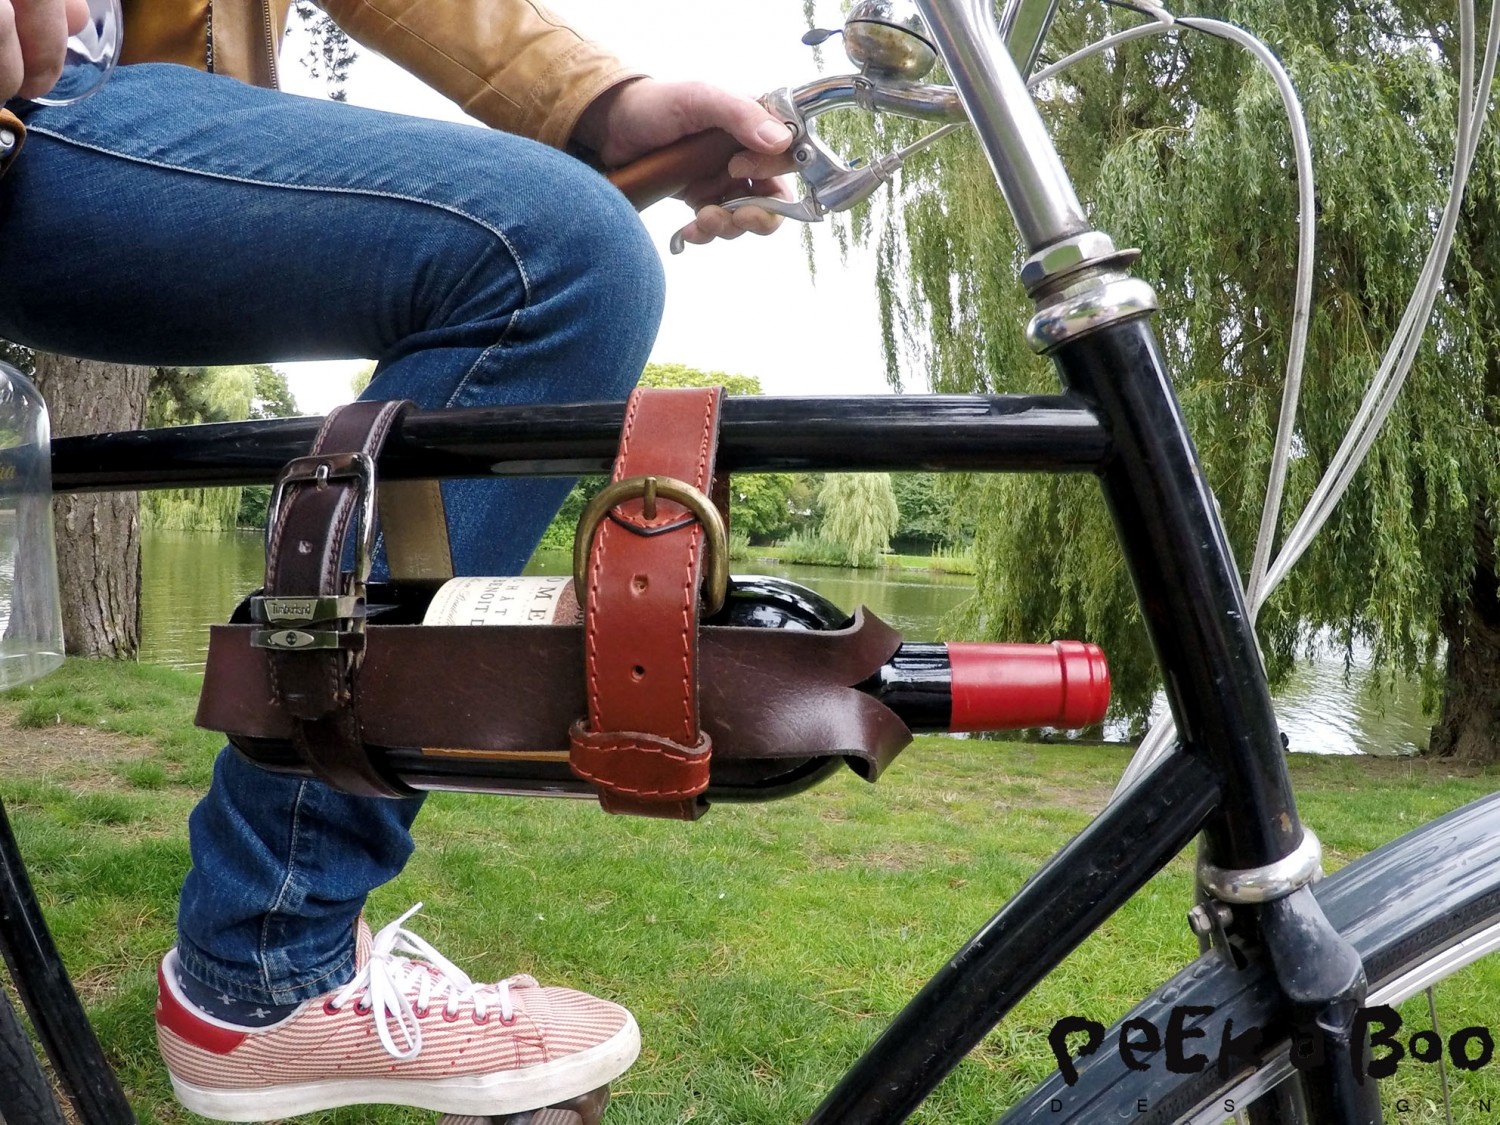 DIY upcycle your belt to be a wineholder for your bike.